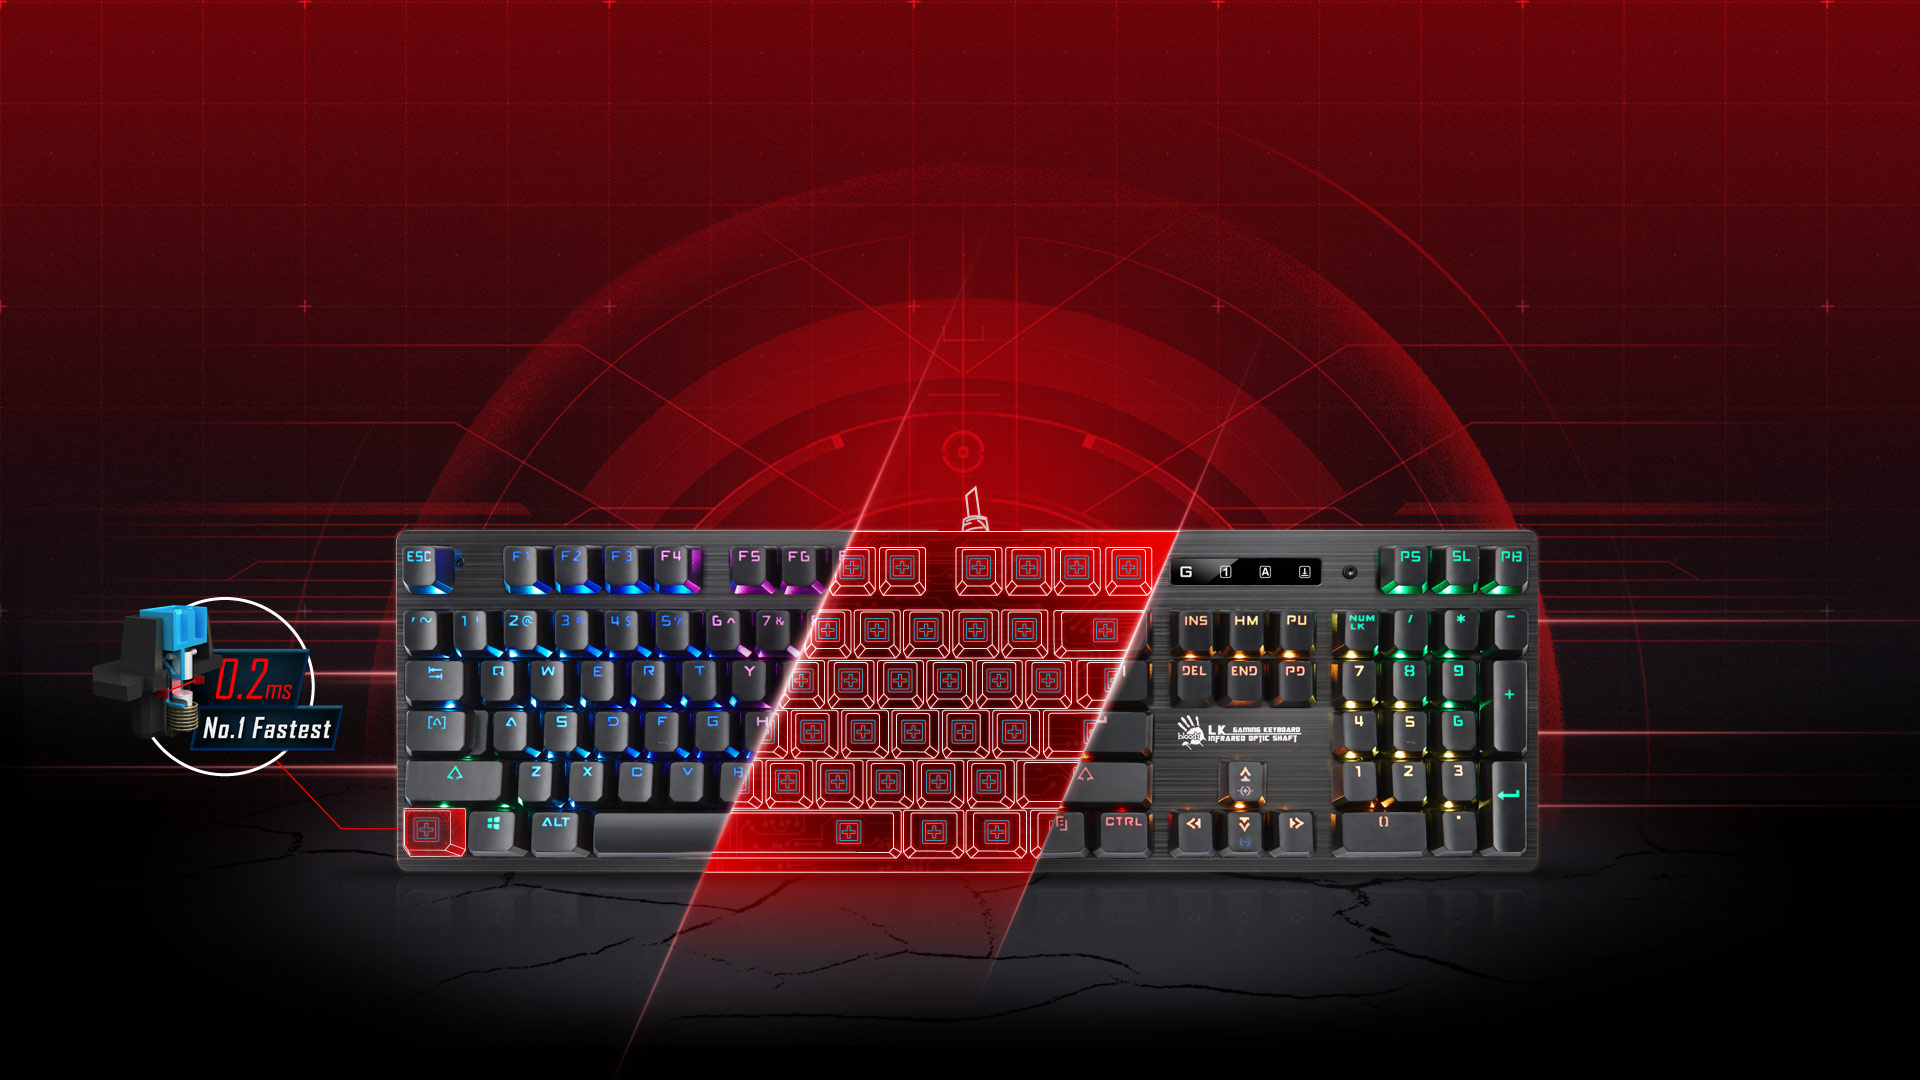 A4Tech Bloody B820R Light Strike RGB Animation Gaming Keyboard